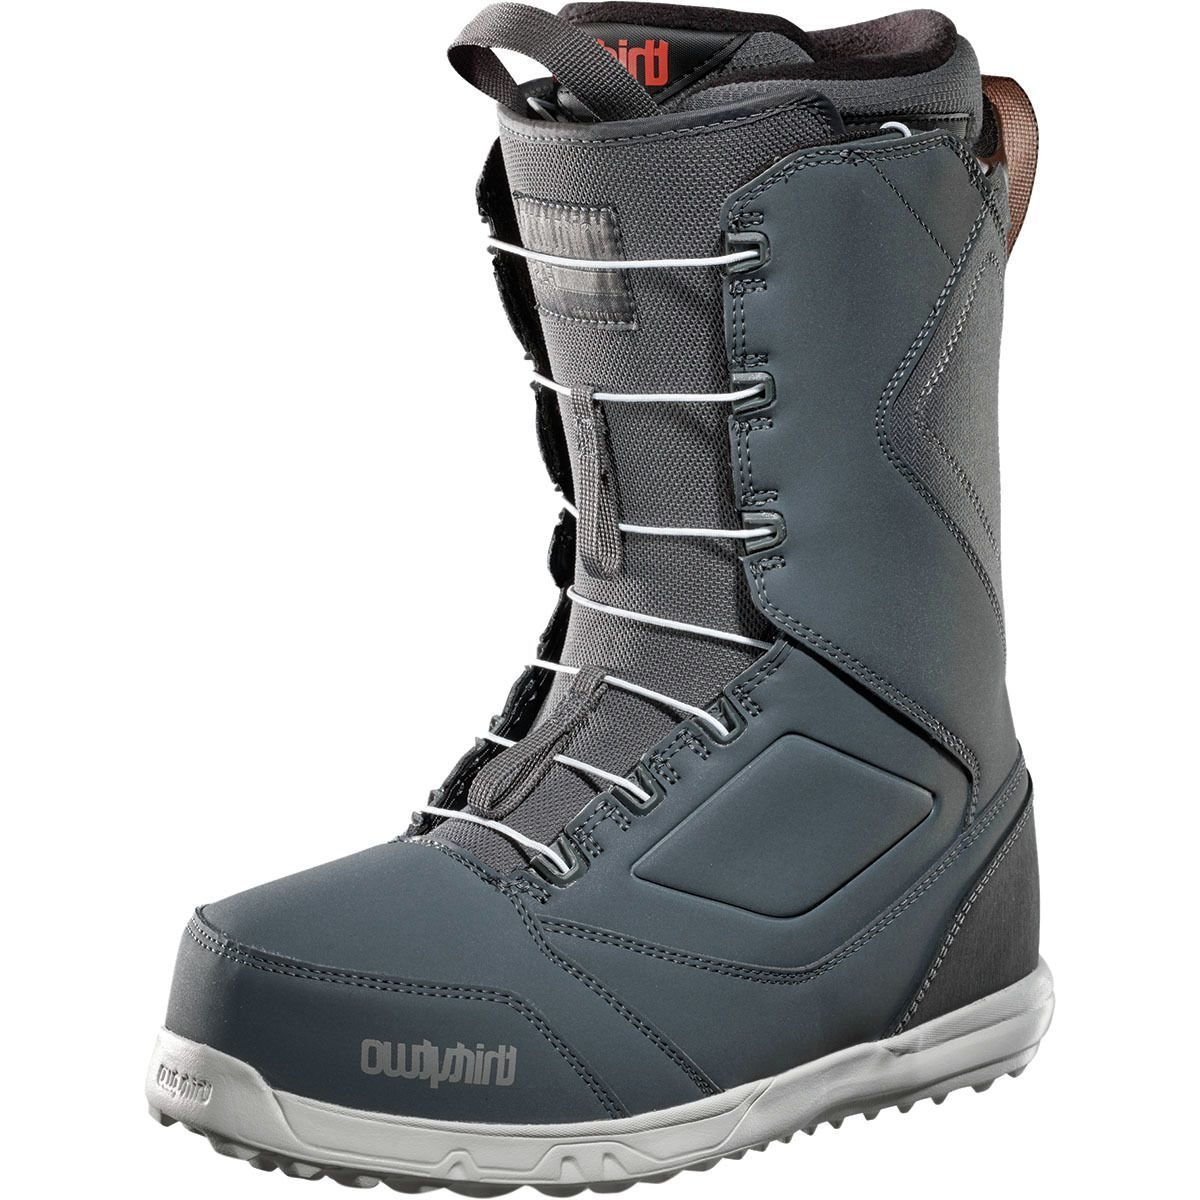 ThirtyTwo Zephyr FT Speedlace Snowboard Boot - Men's